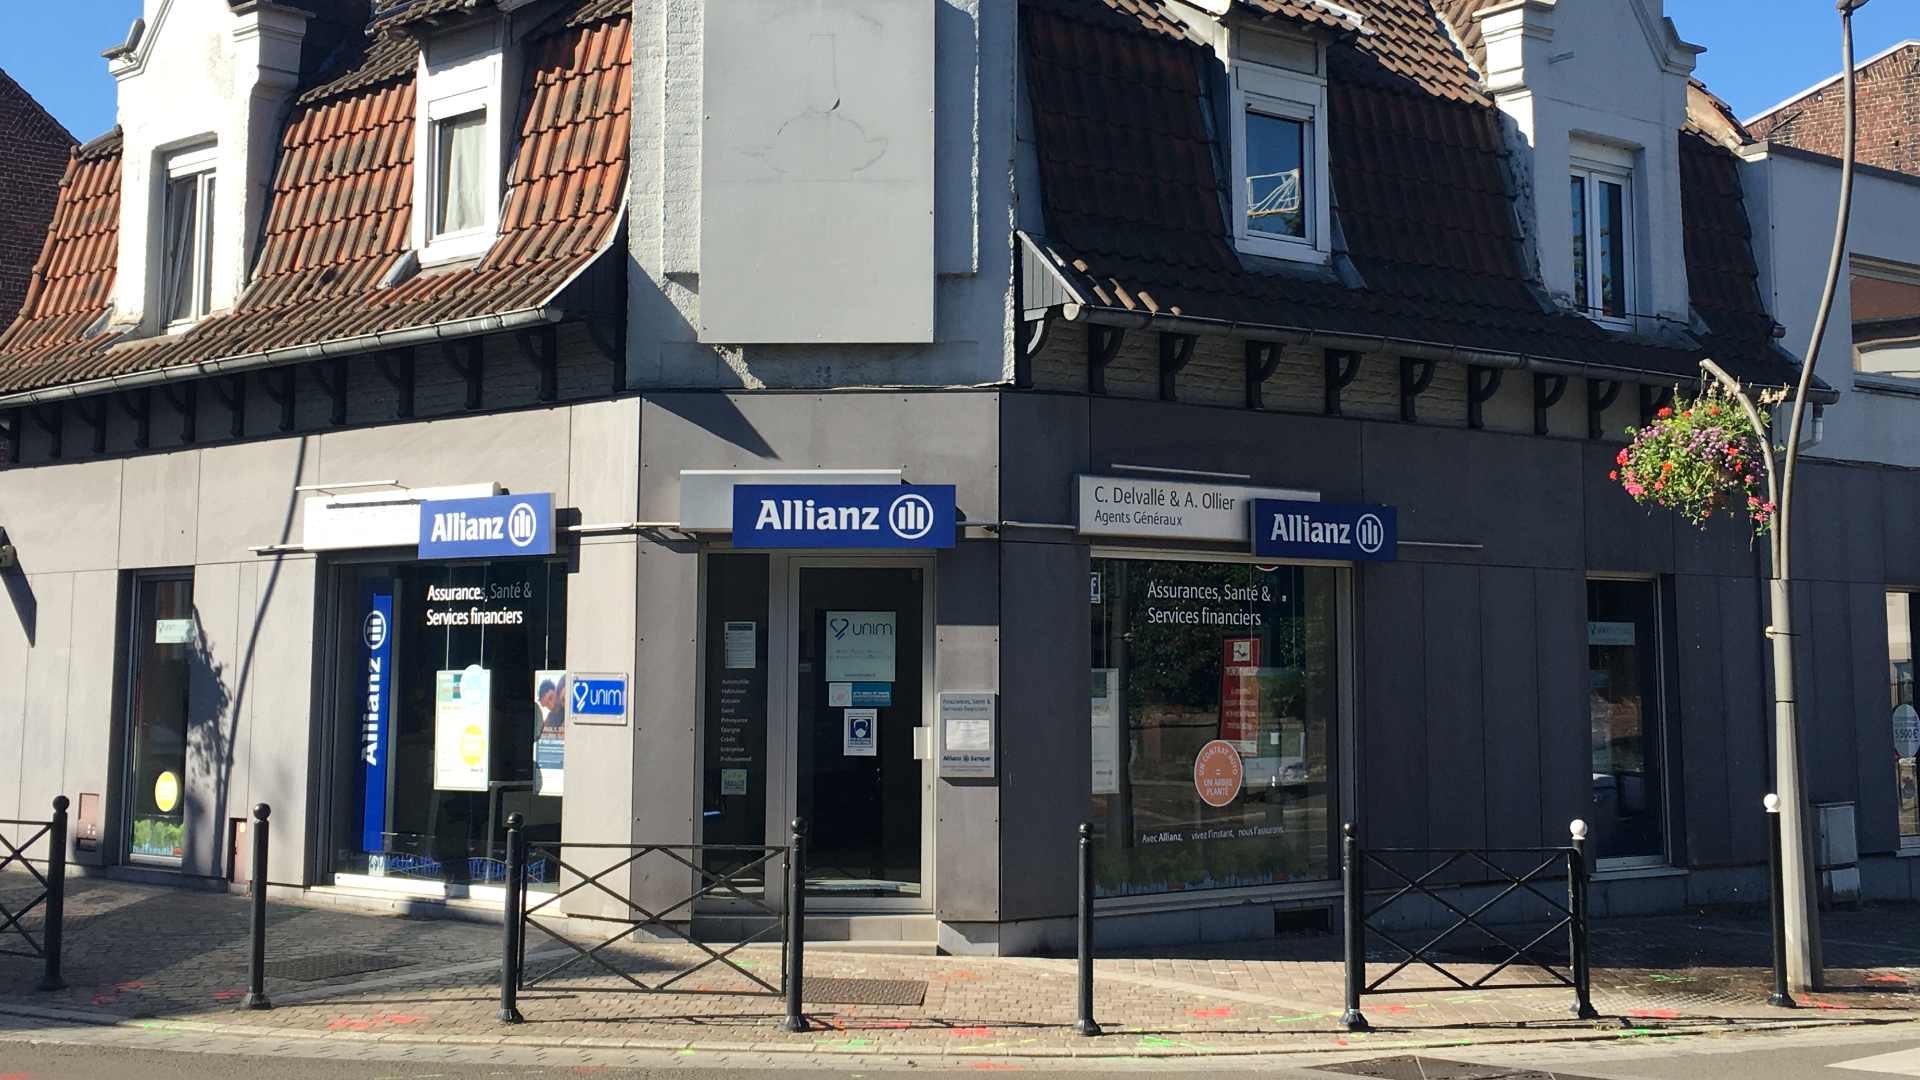 Allianz WAMBRECHIES-LILLE - DELVALLE & OLLIER